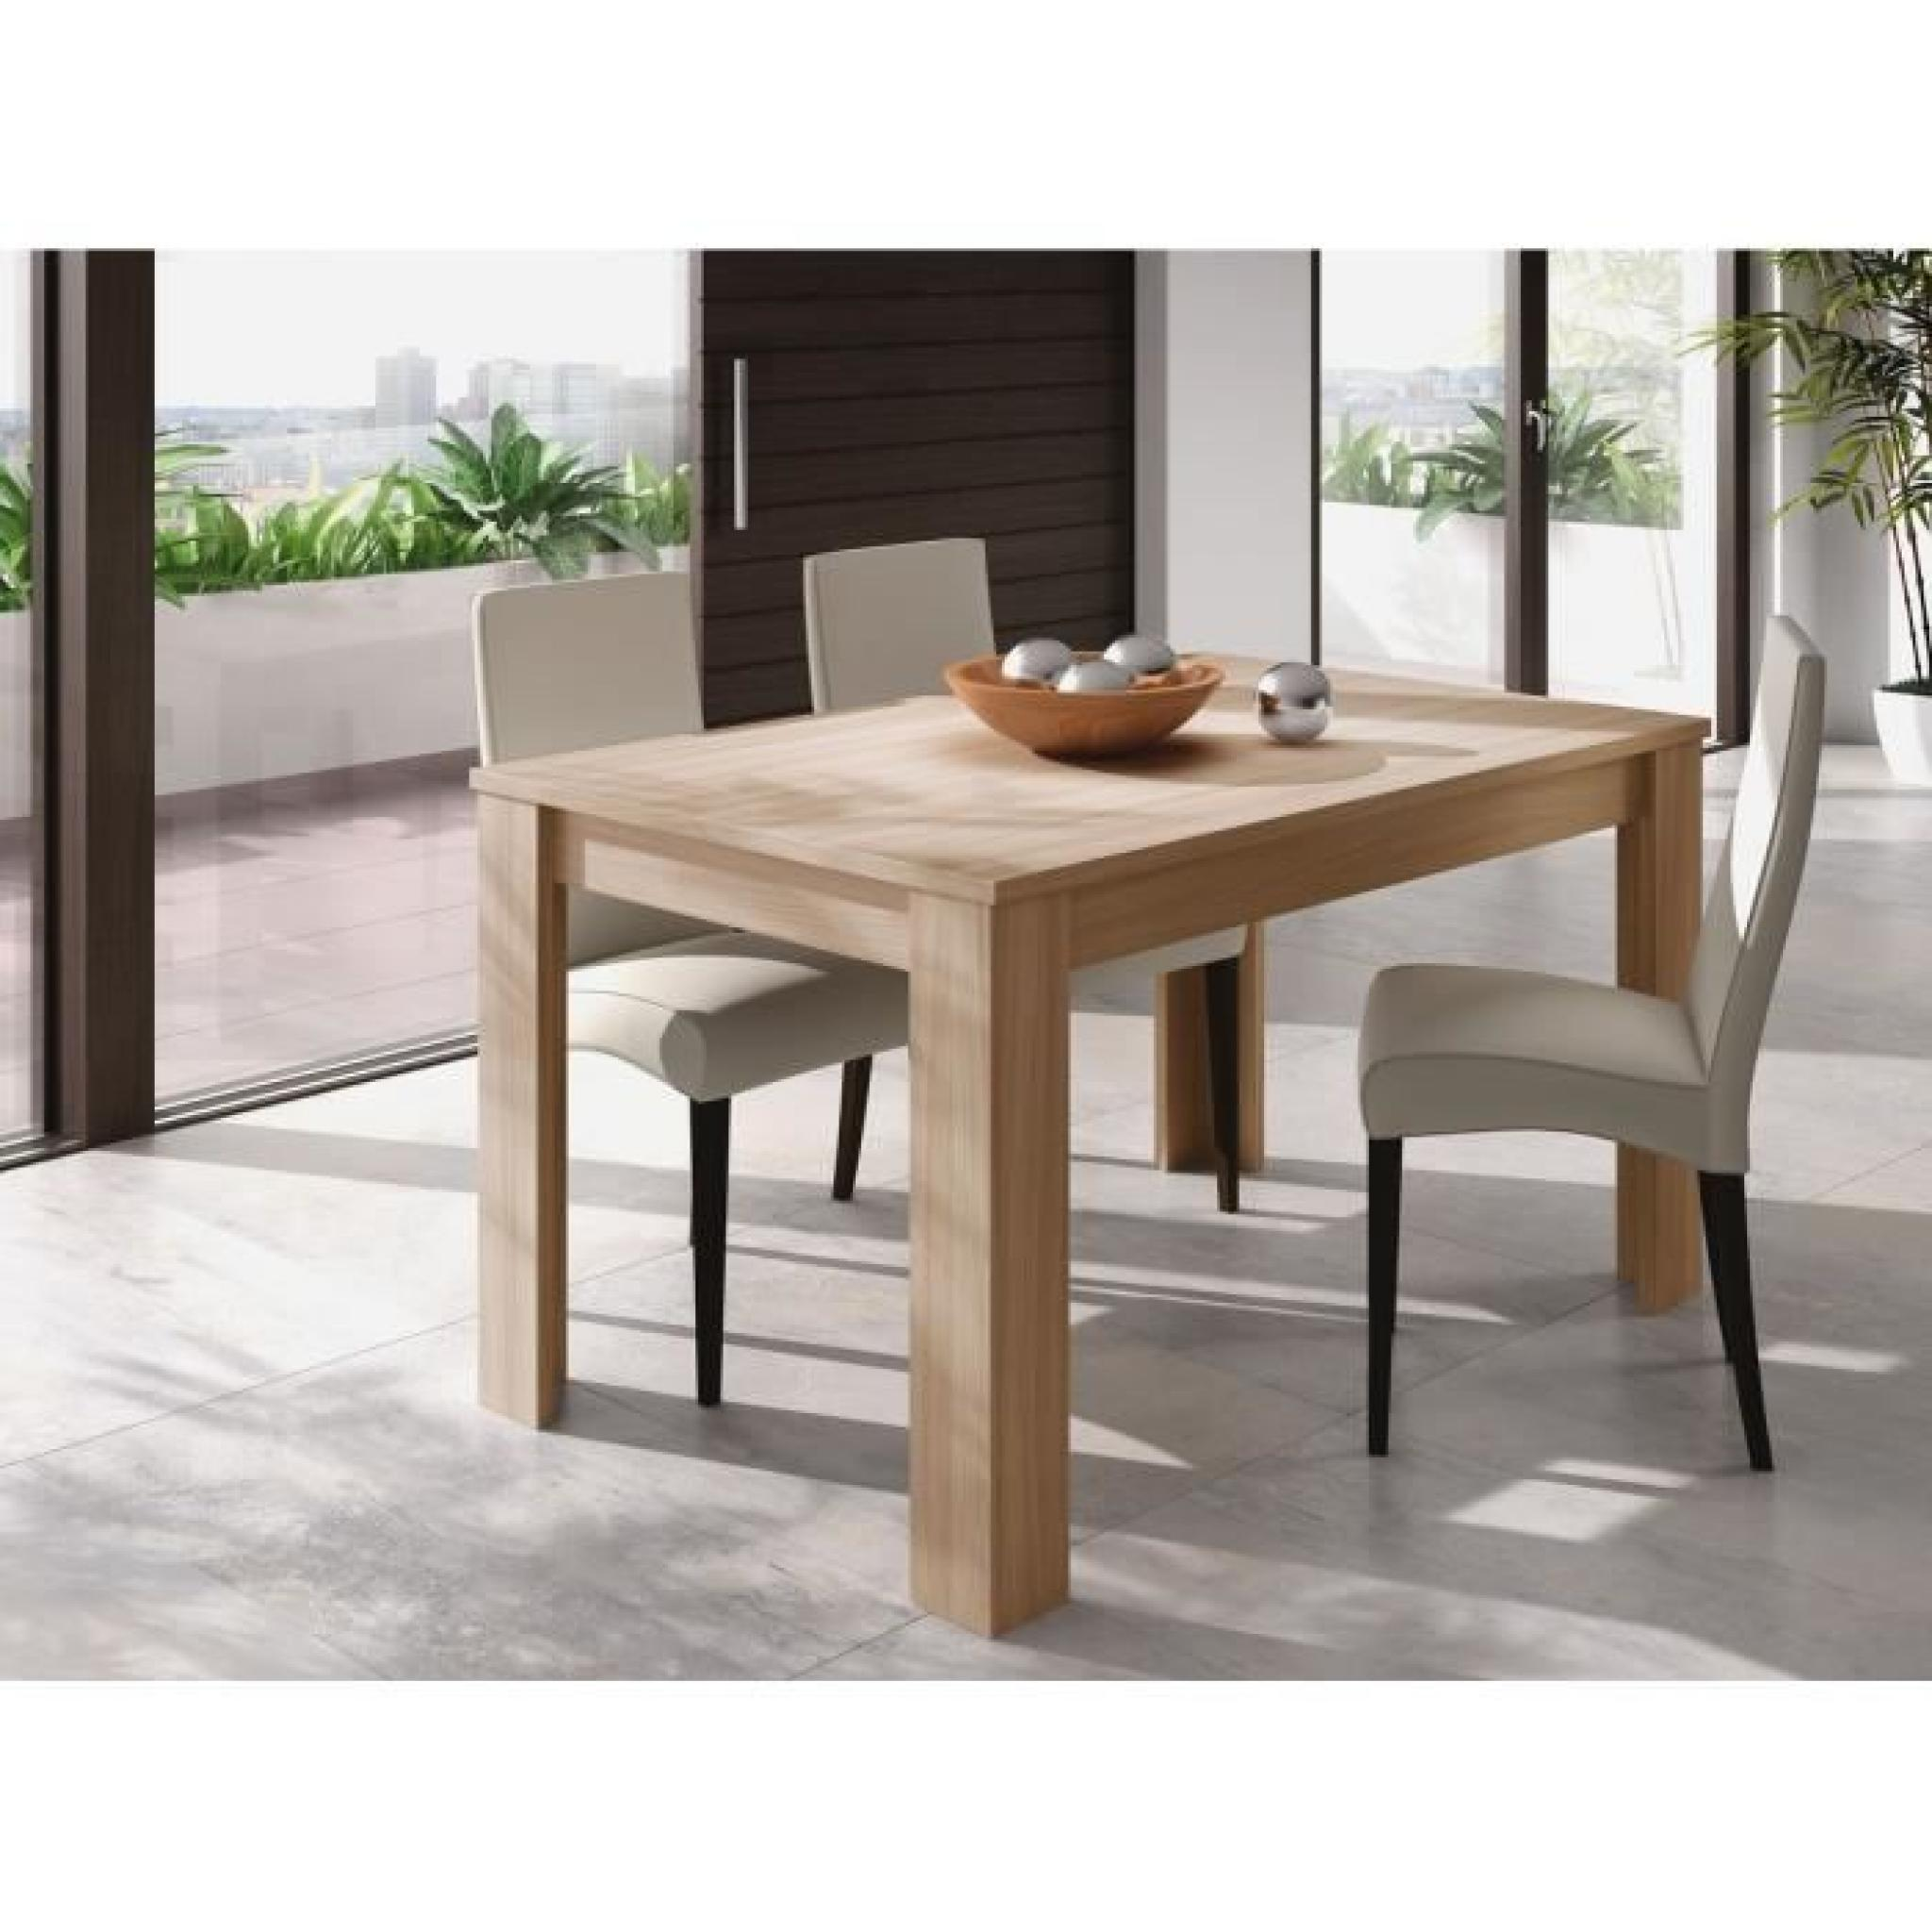 Best table en chene clair contemporary awesome interior for Table a manger 120 cm extensible